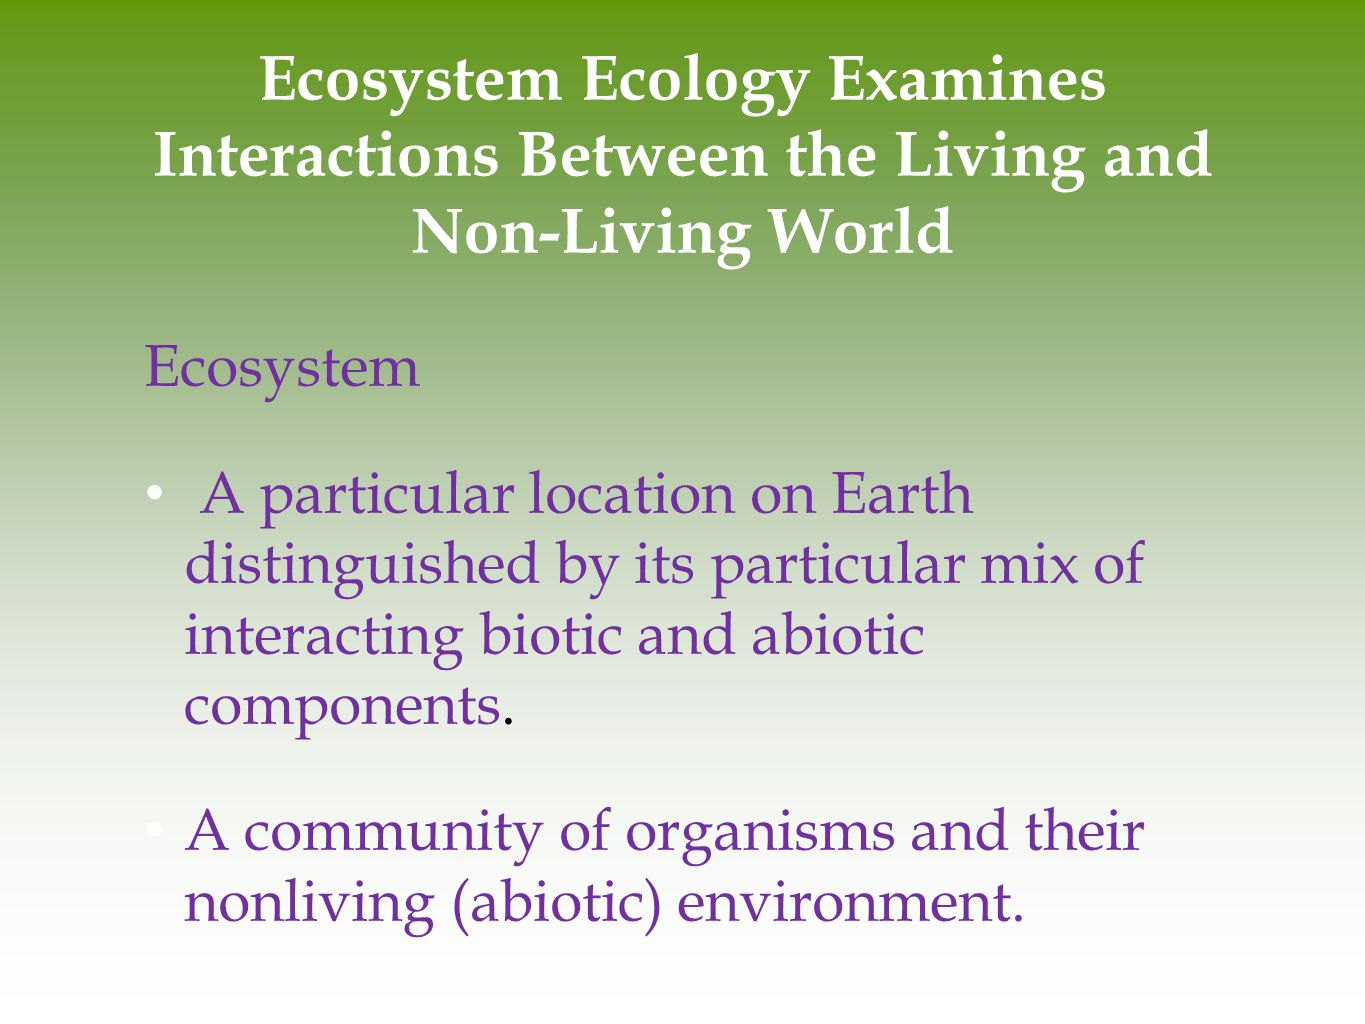 Ecosystem Ecology Examines Interactions Between the Living and Non-Living World